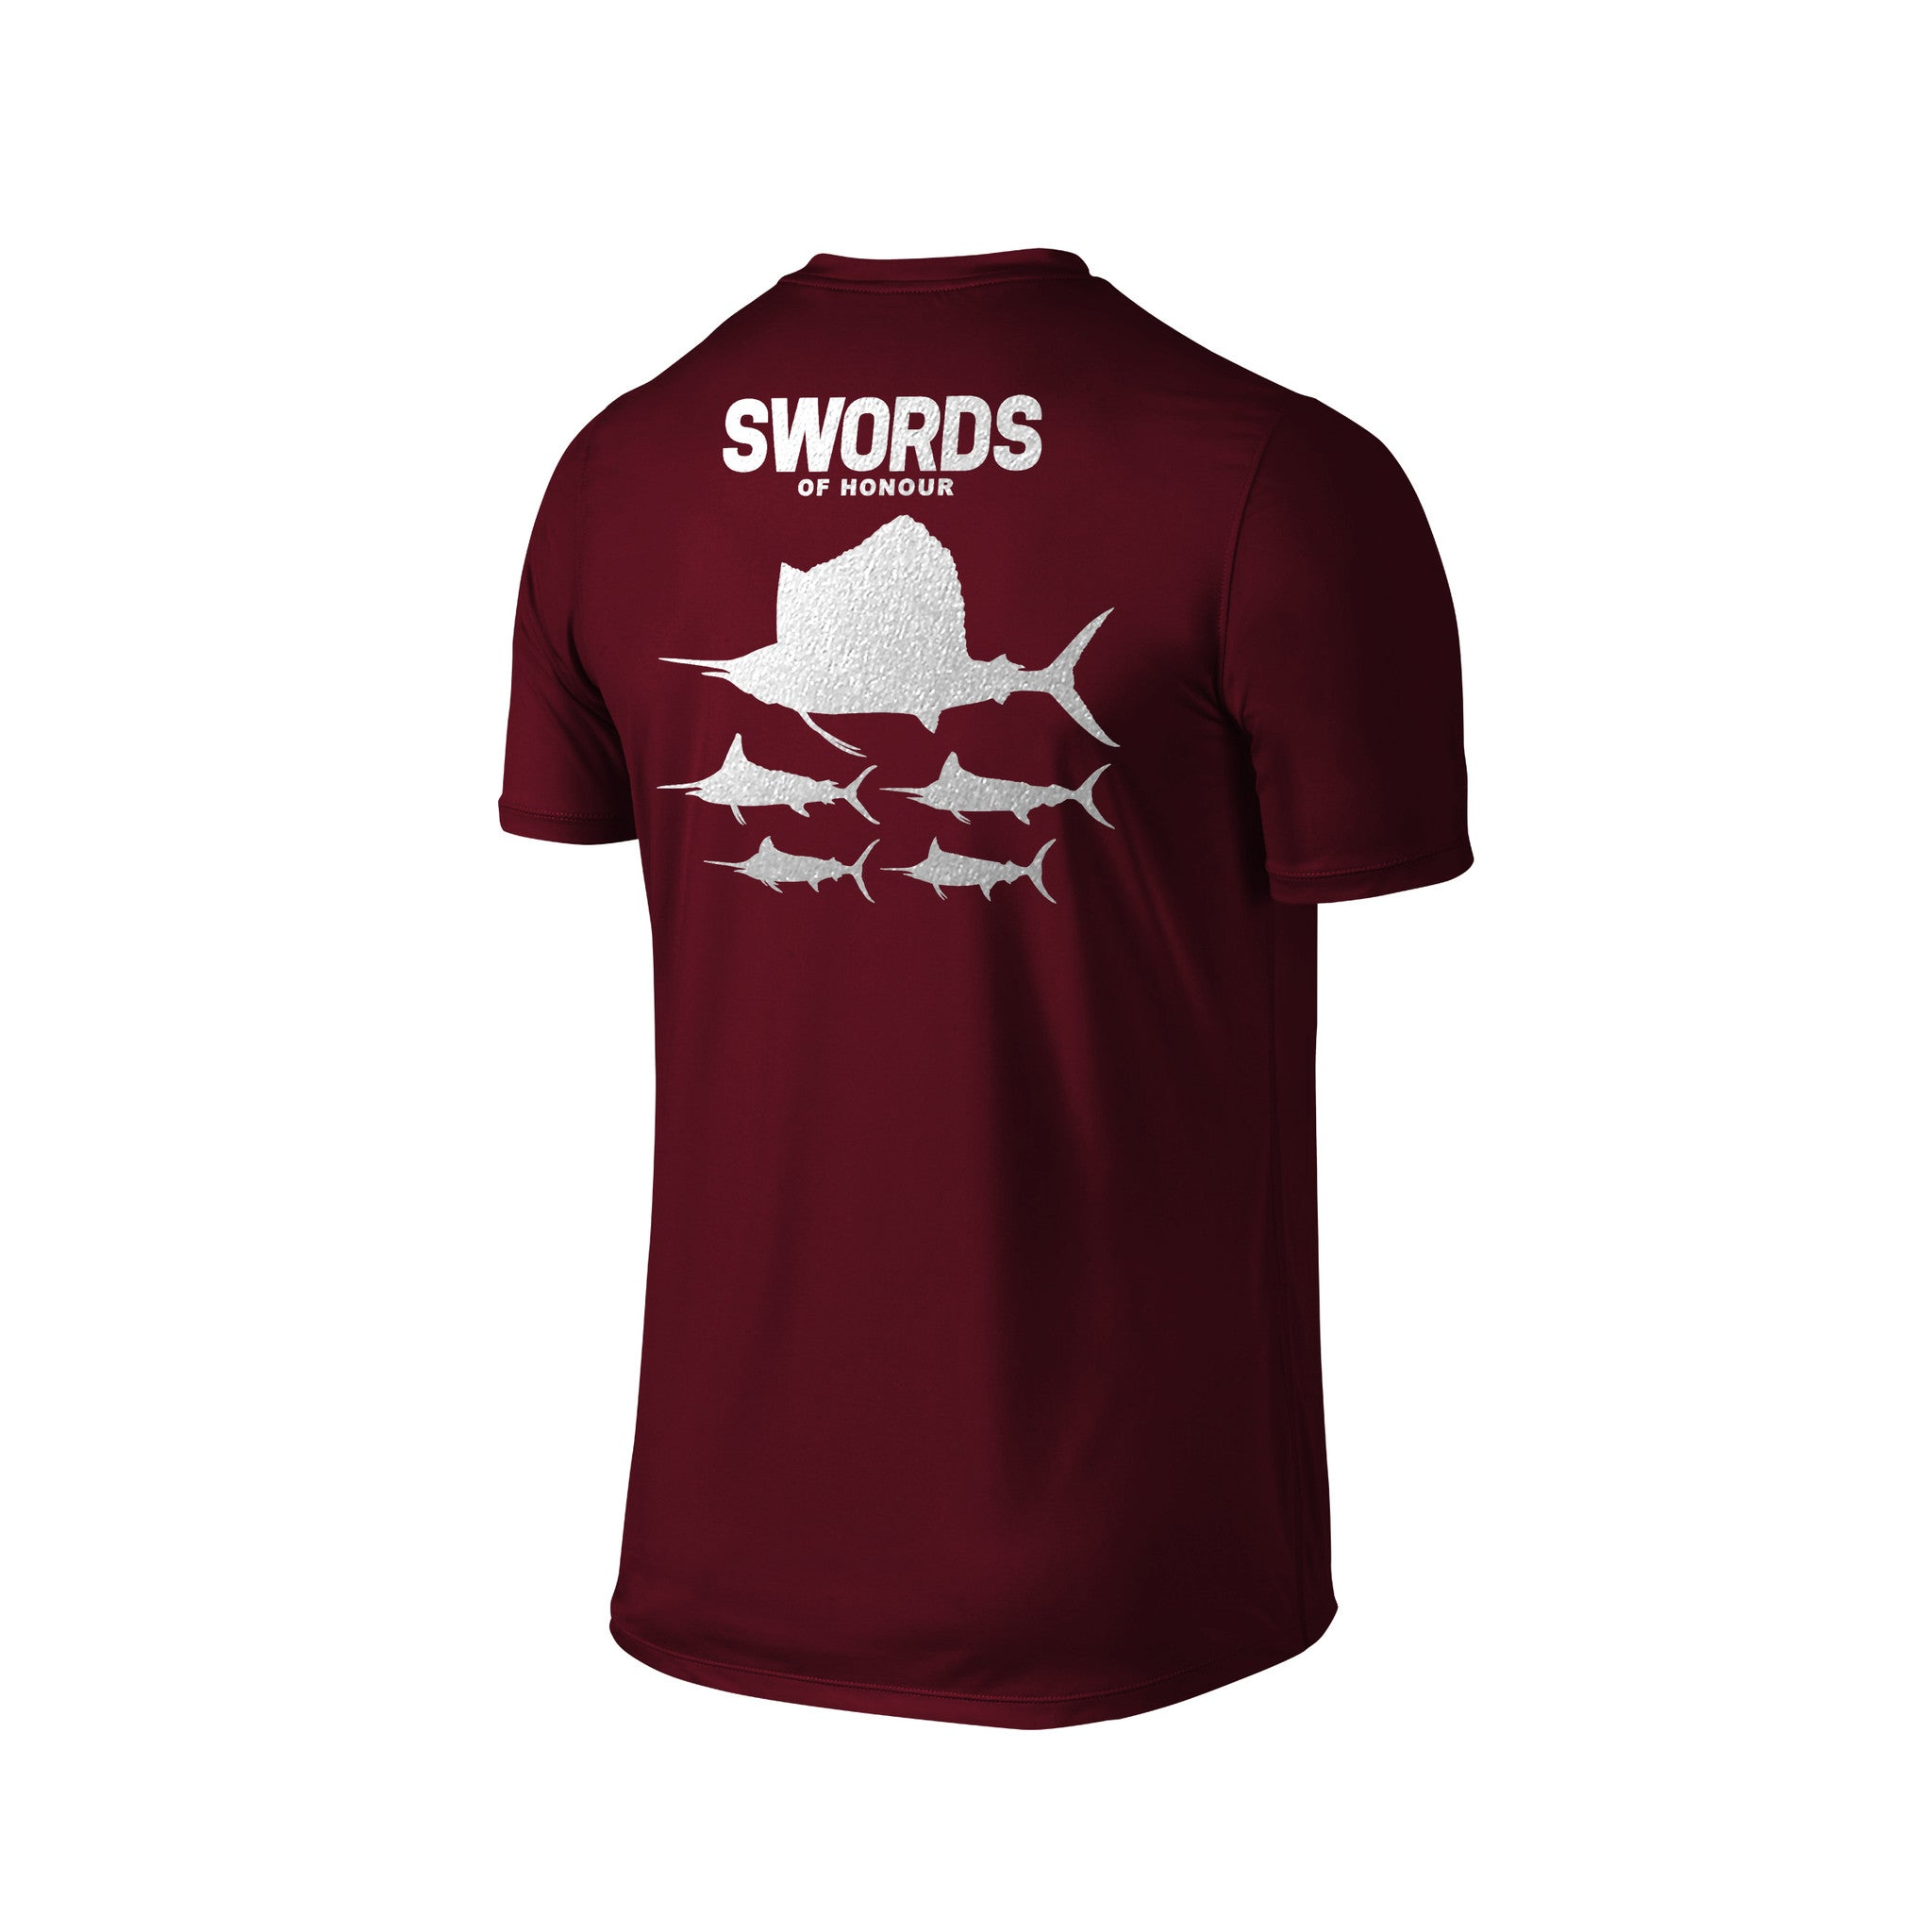 SportyFish Silhouette Series Silver Print Maroon T-shirt(back view): Swords of Honour